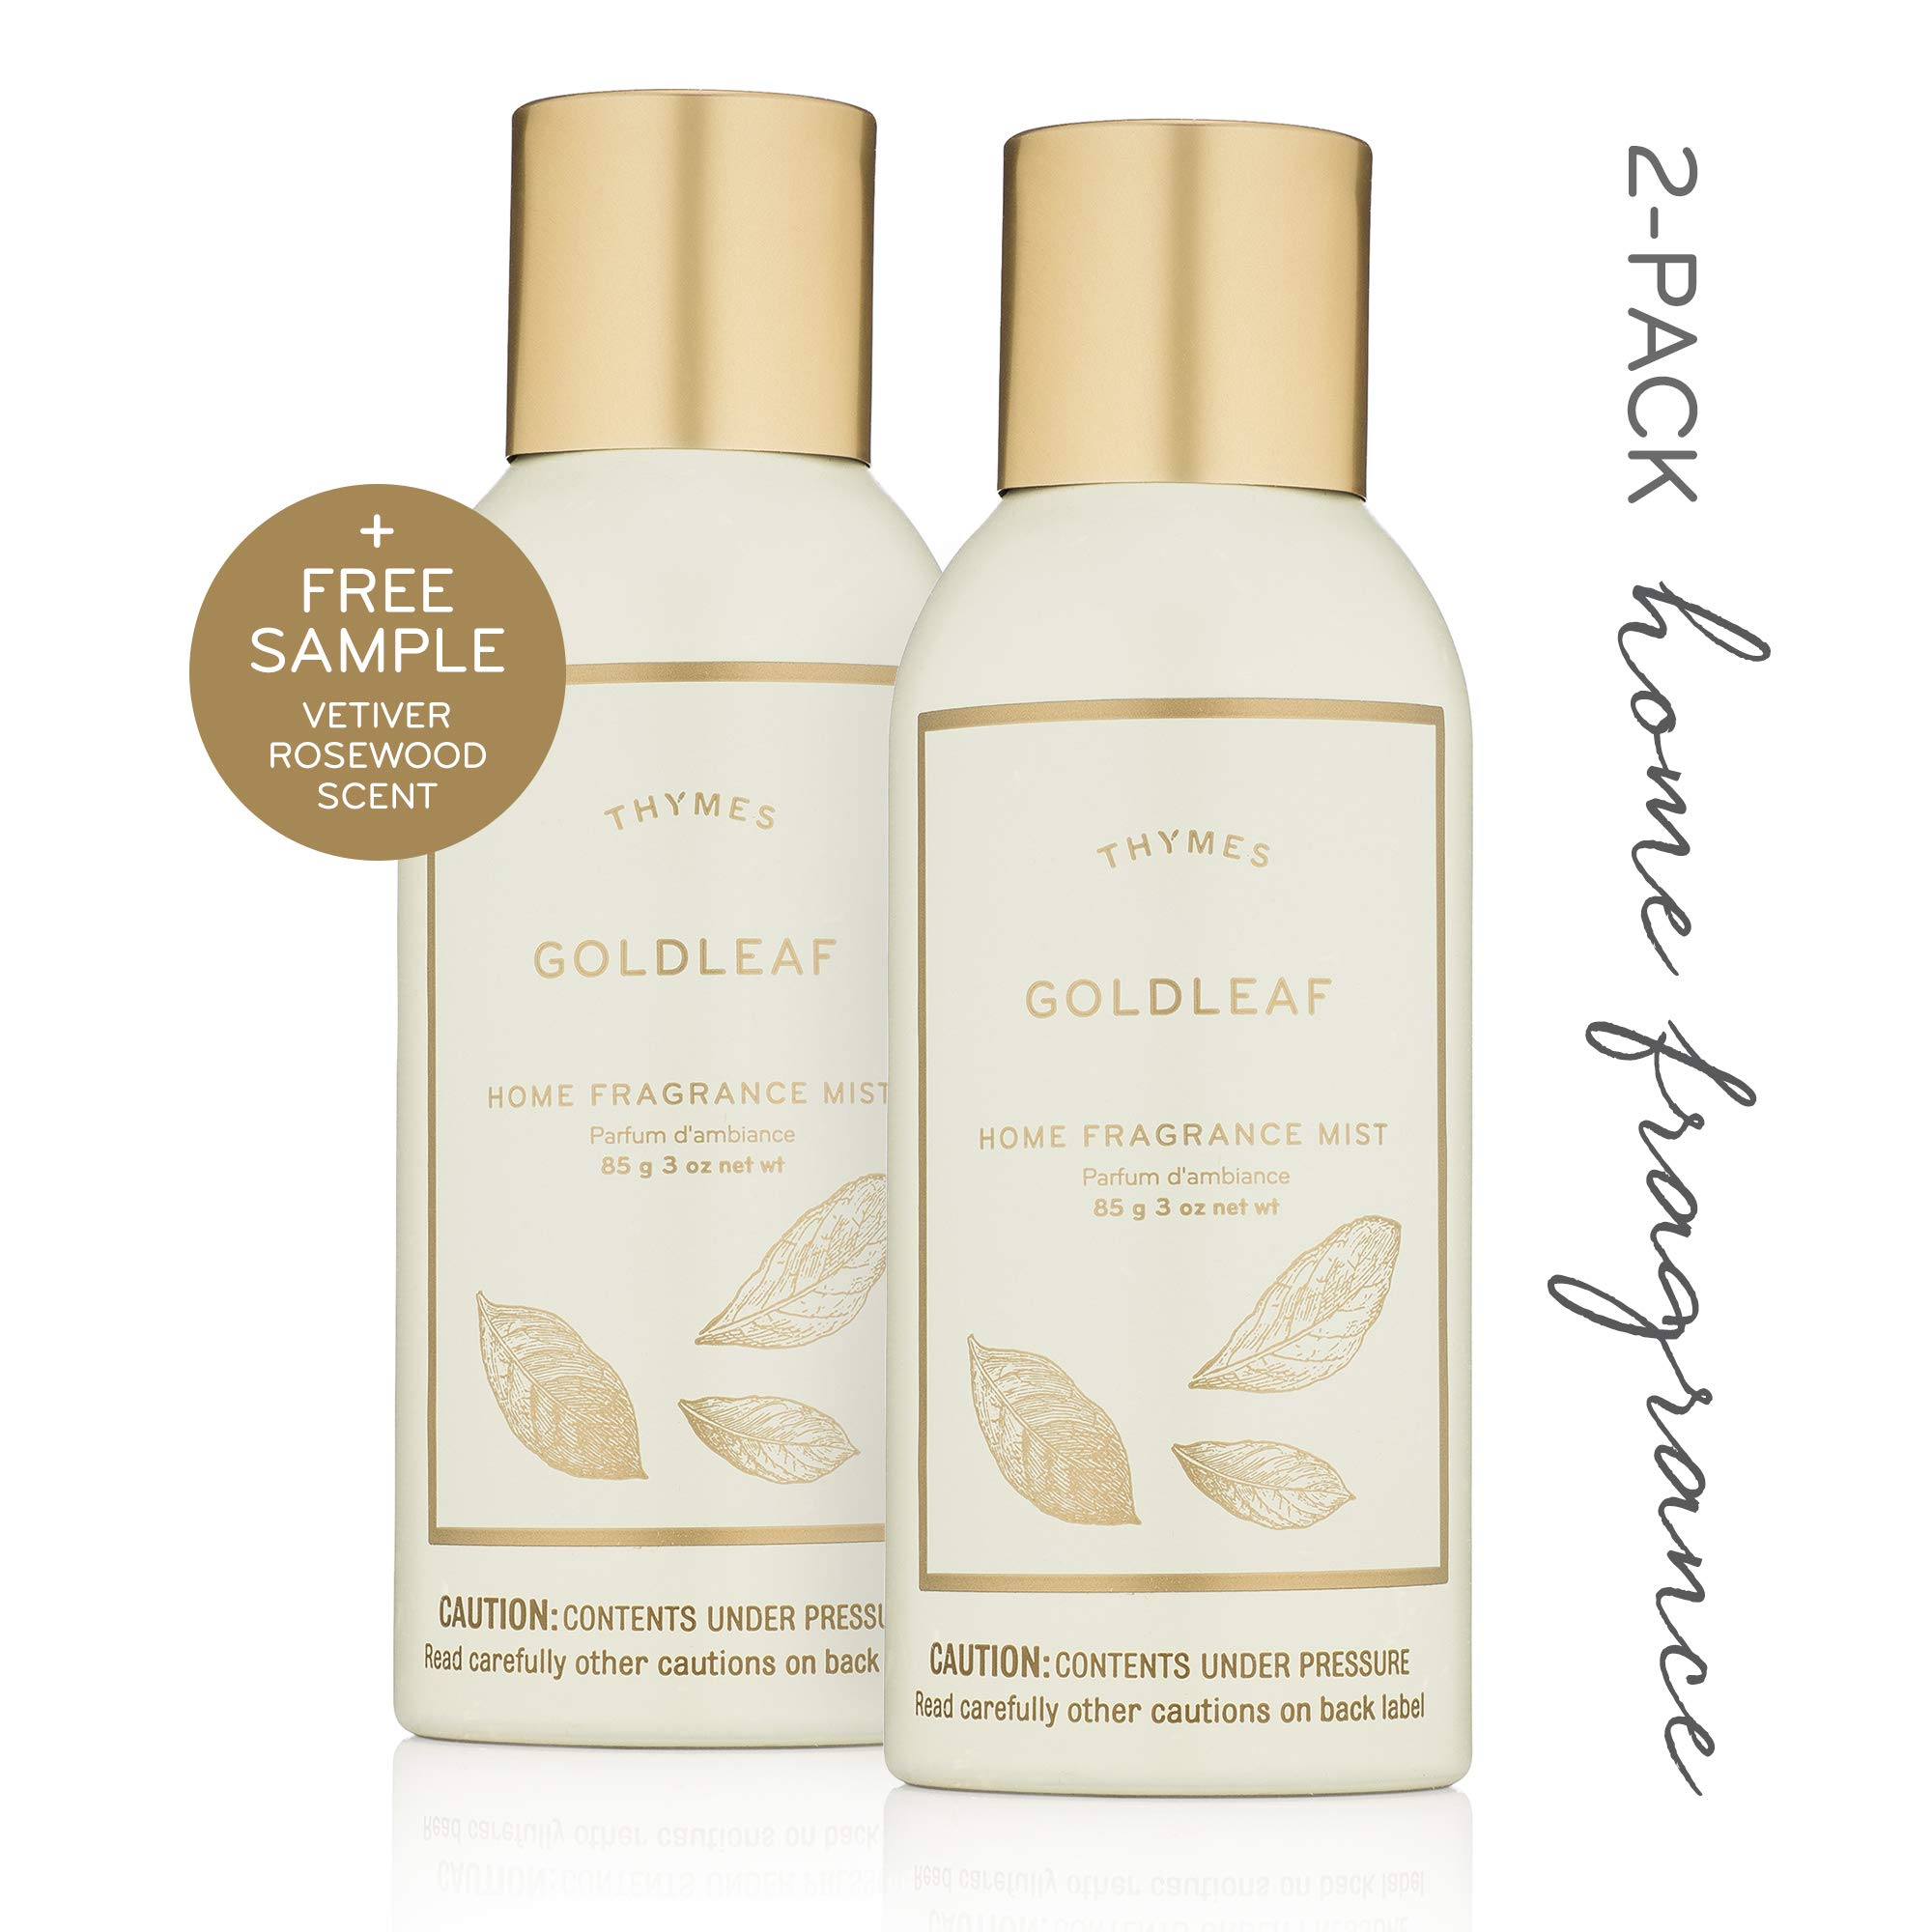 Thymes - Goldleaf Home Fragrance Mist (2-Pack) with Free Vetiver Rosewood Sample Pack- Elegant Floral Scented Room Spray - 3 oz